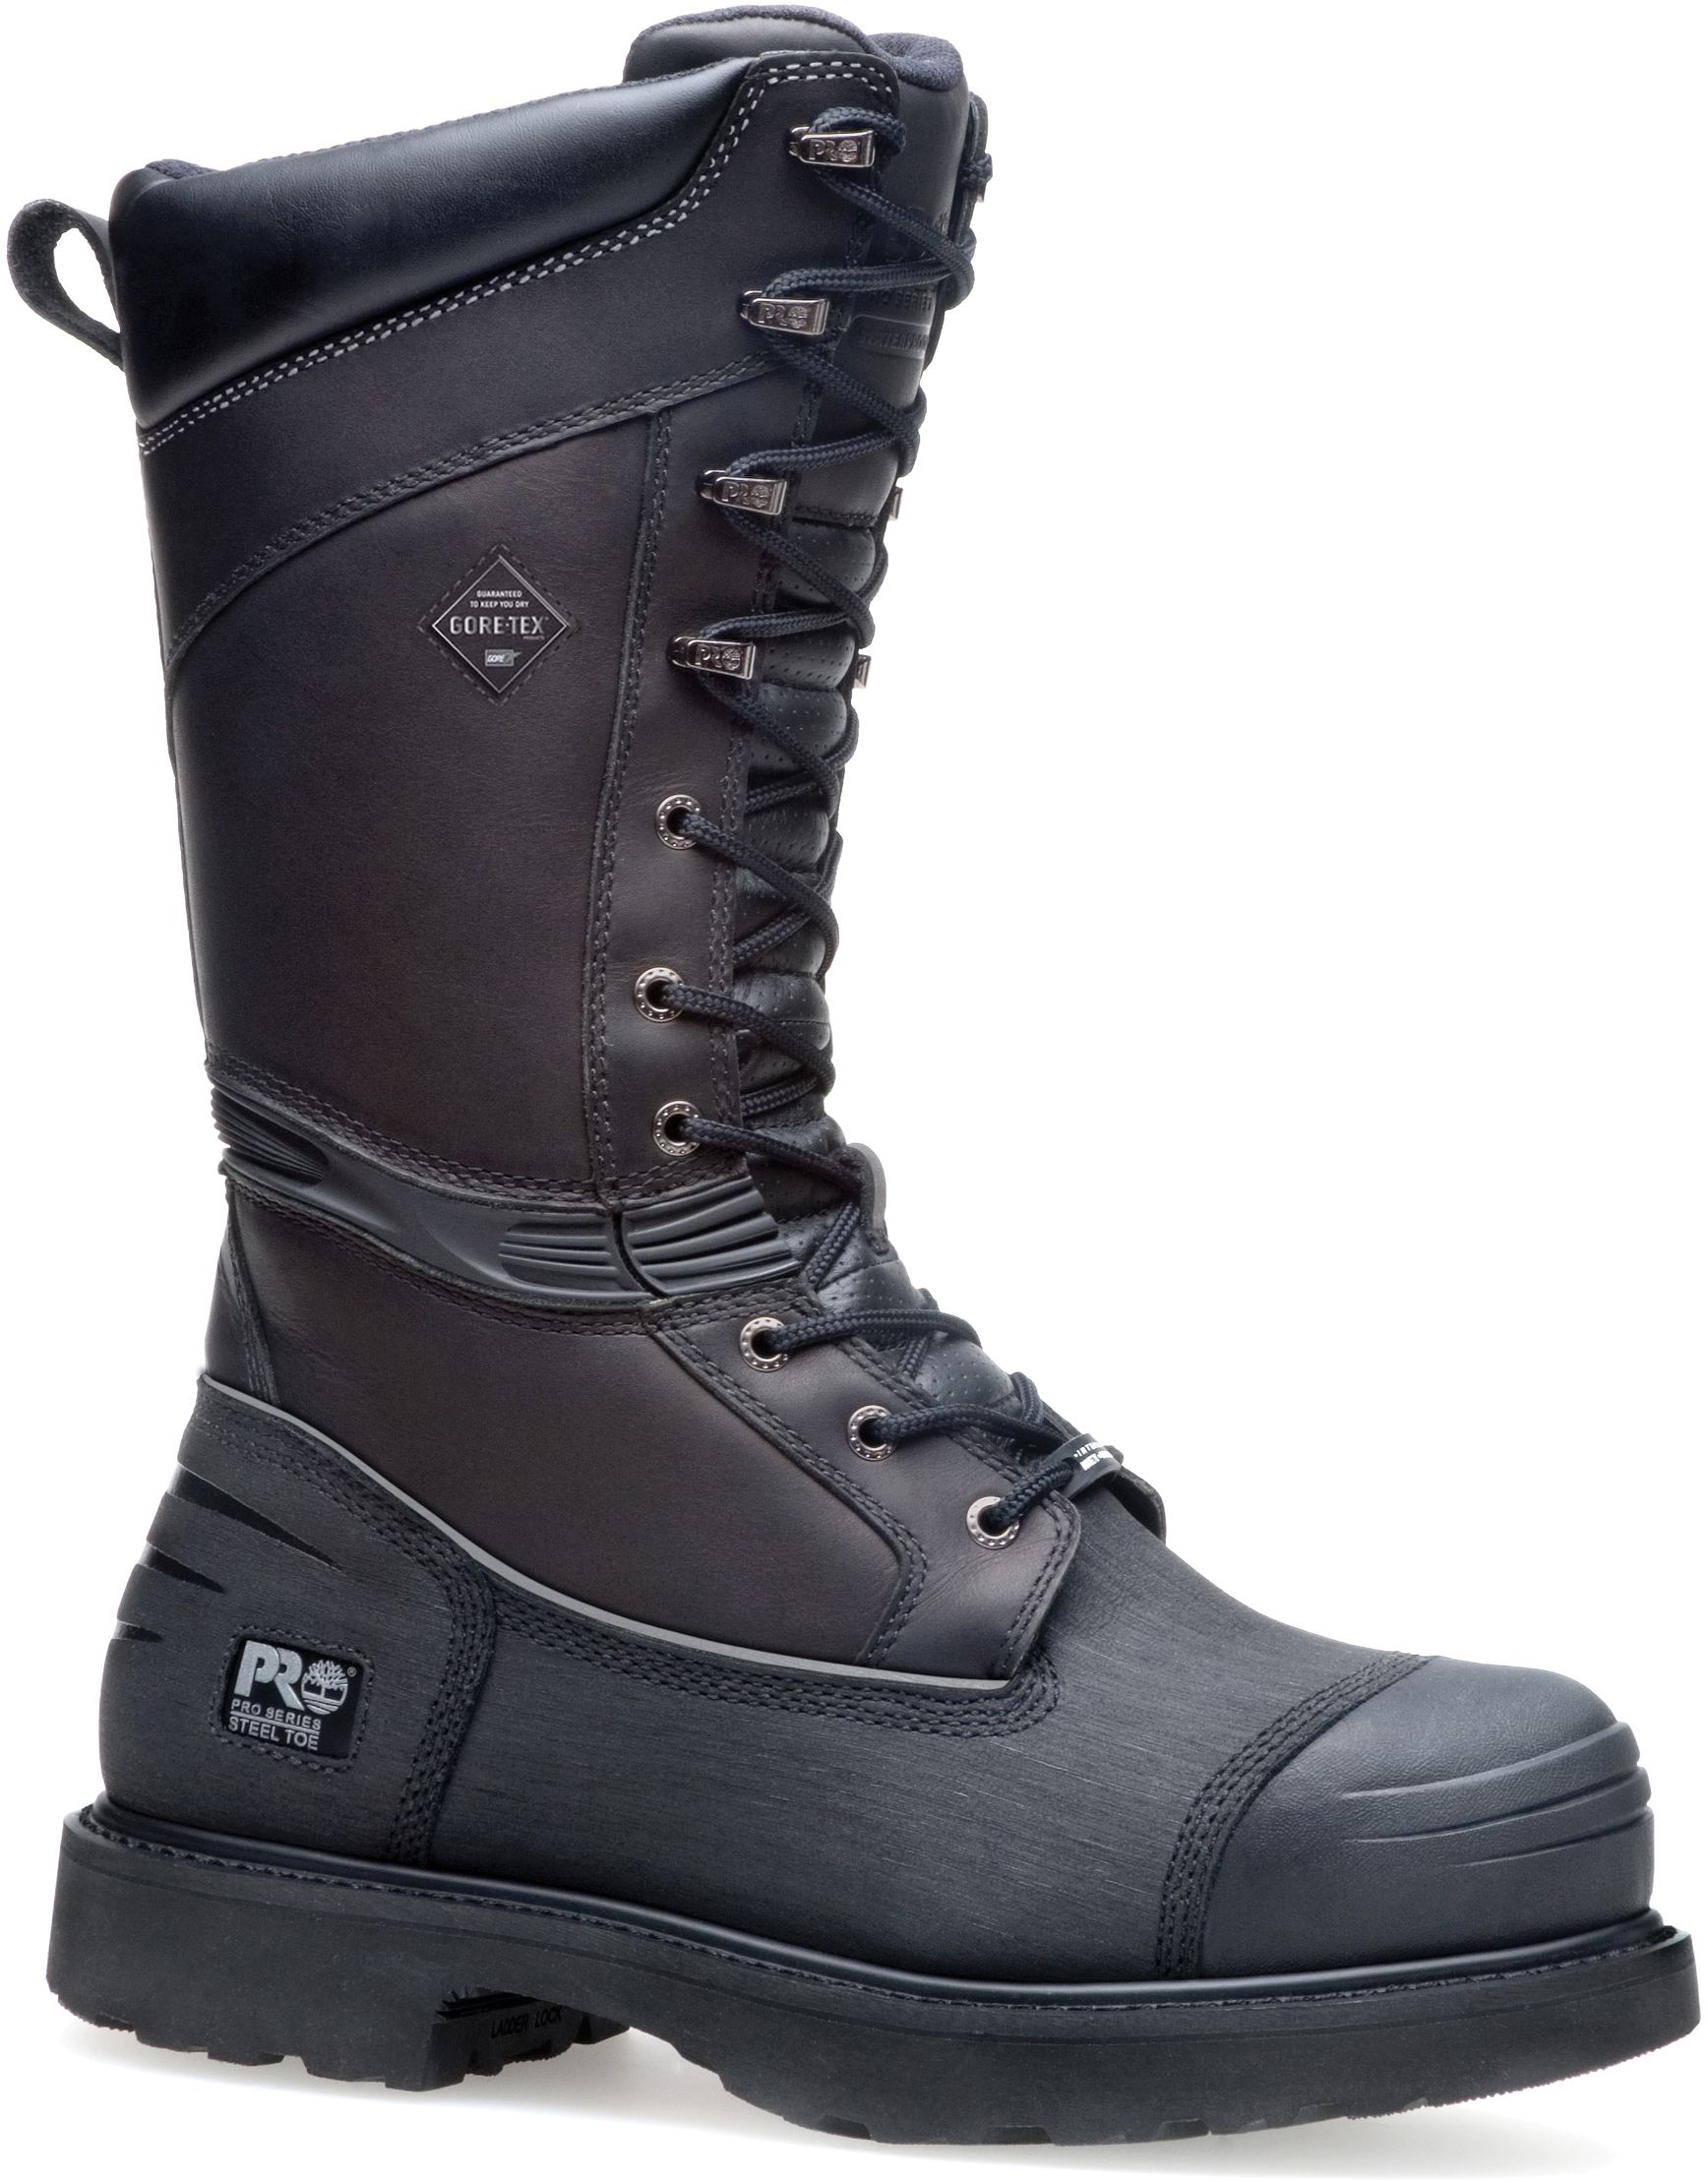 f75042523d 095557001 Timberland PRO Men's Mining Safety Boots - Black ...